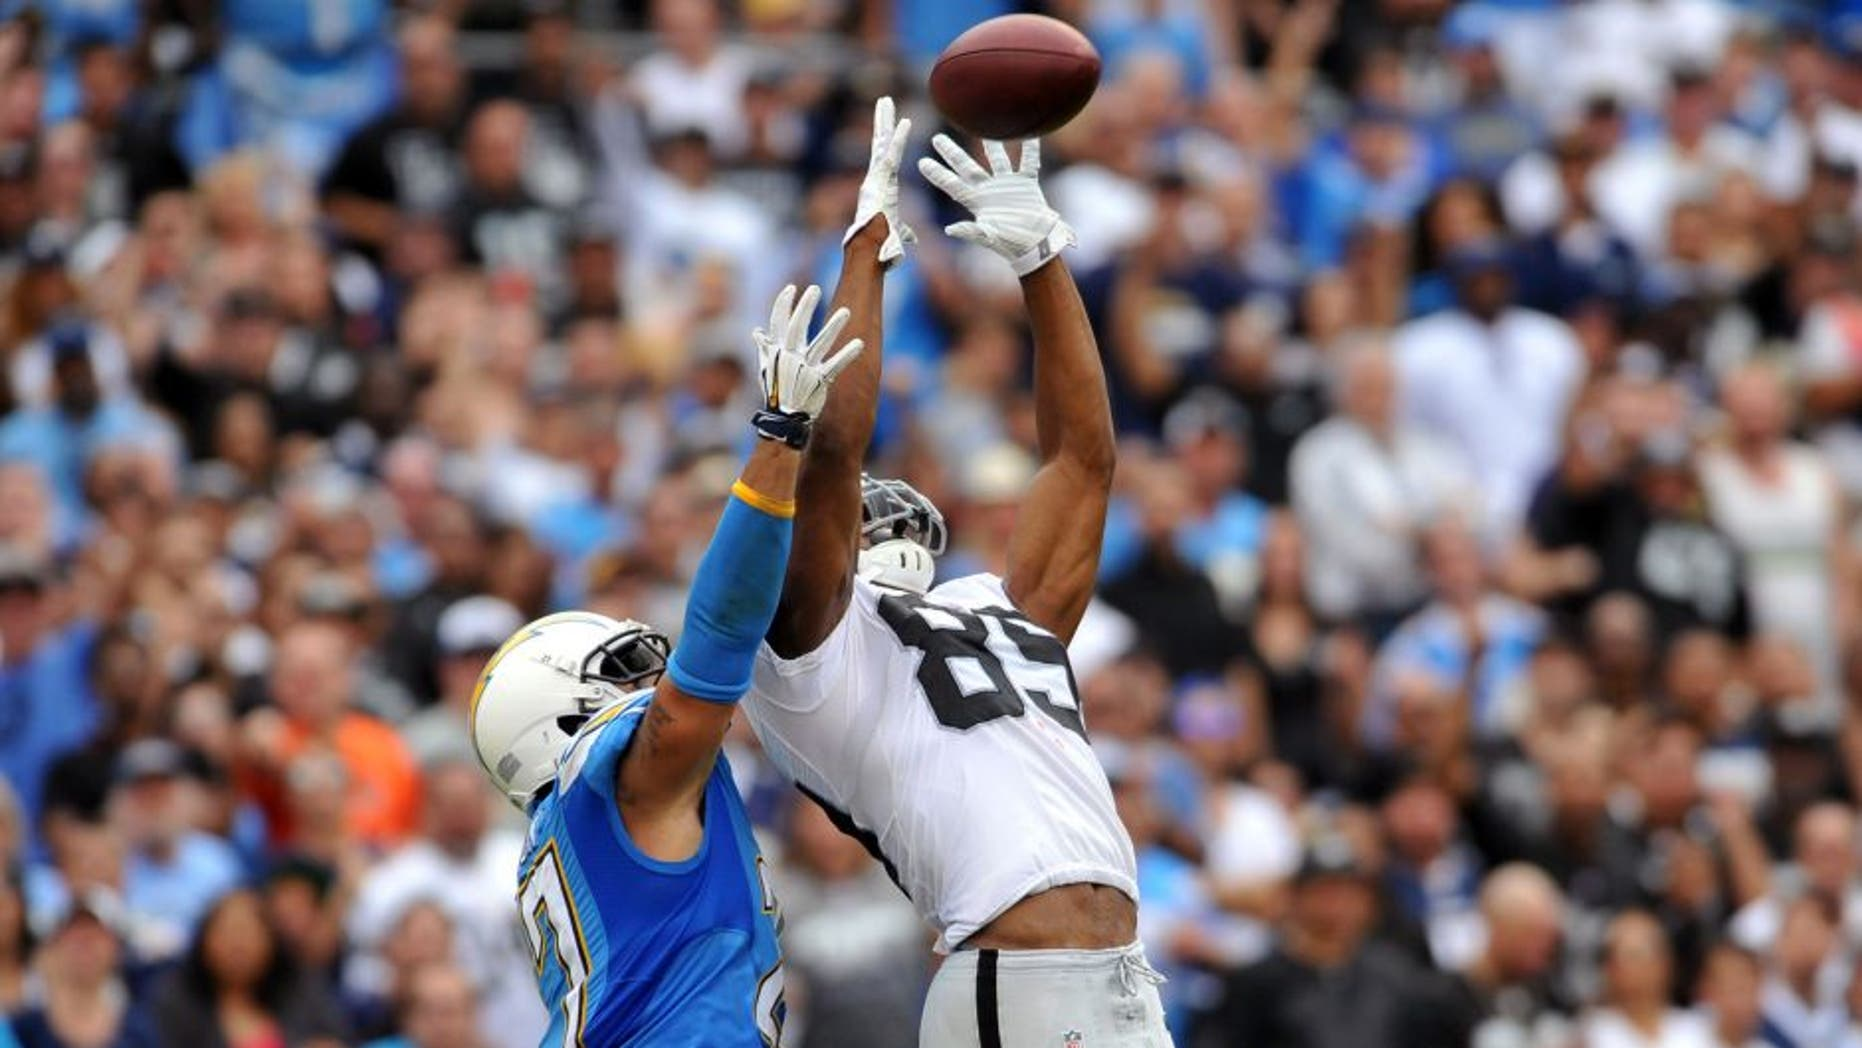 Oct 25, 2015; San Diego, CA, USA; Oakland Raiders wide receiver Amari Cooper (89) catches a pass while defended by San Diego Chargers defensive back Jimmy Wilson (27) during the second quarter at Qualcomm Stadium. Mandatory Credit: Orlando Ramirez-USA TODAY Sports